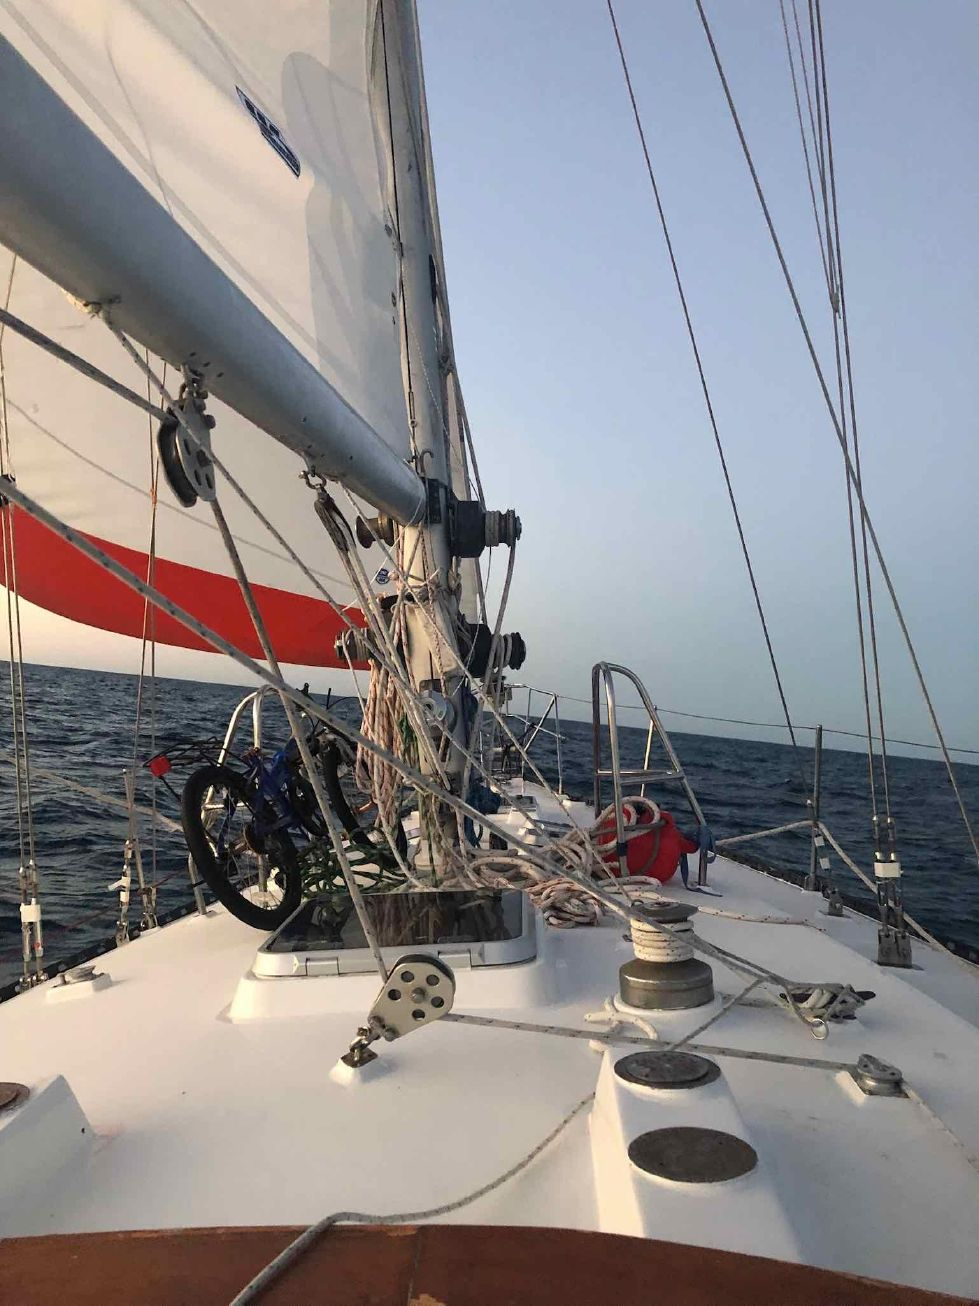 1986 Kaufman Cutter - Under Sail Enroute to Bahamas May 2019